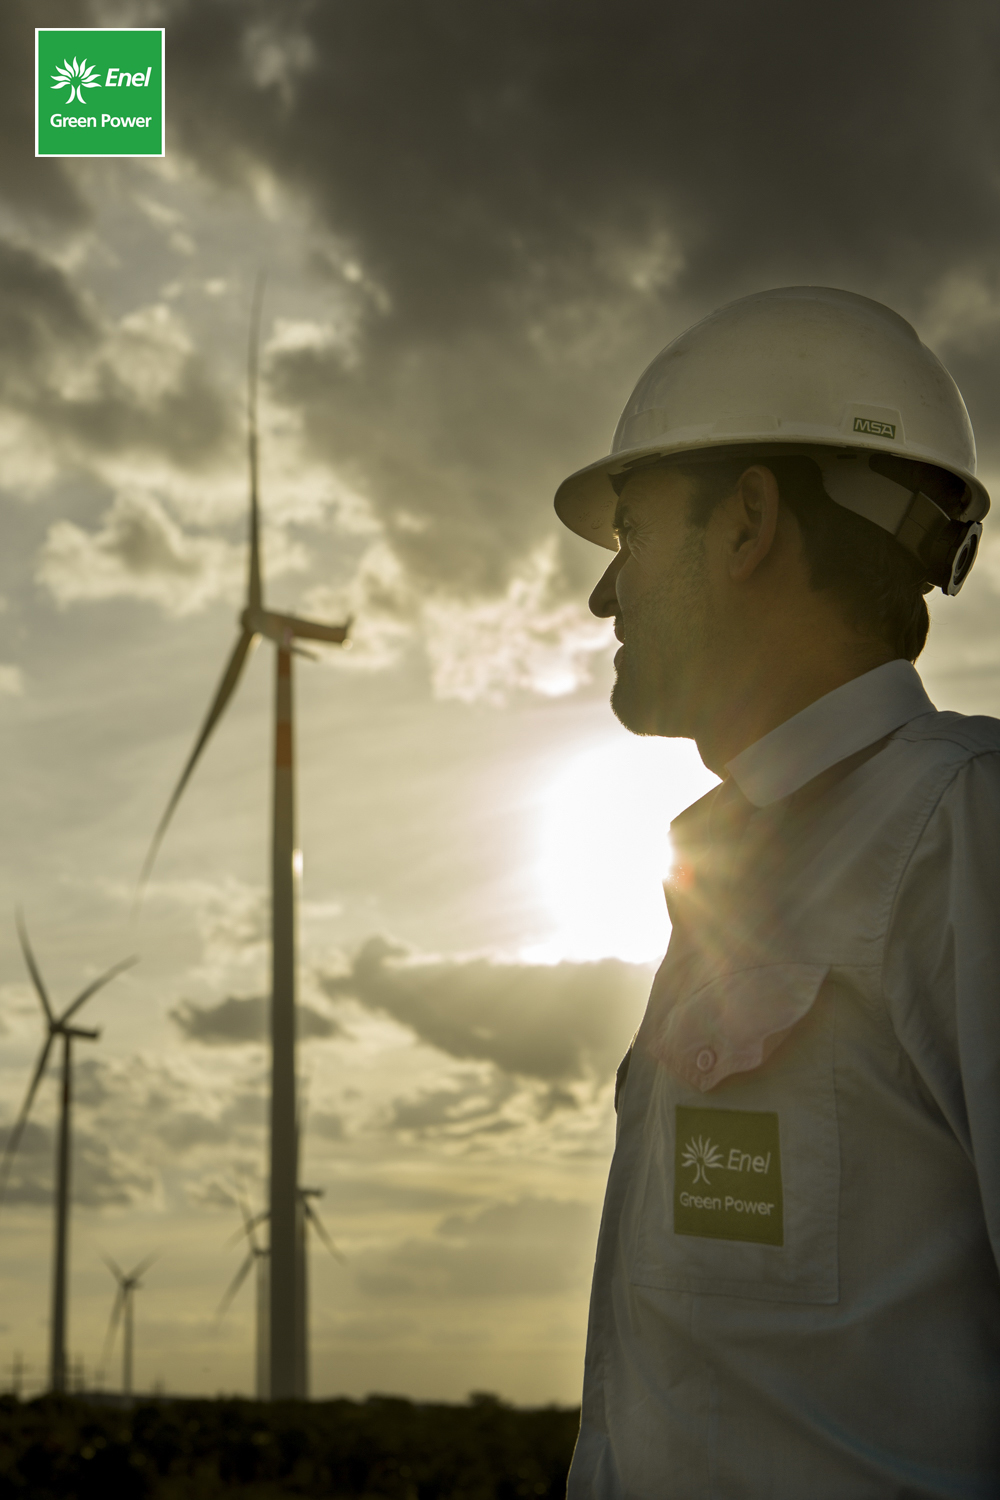 Series of photographs for Enel Green Power